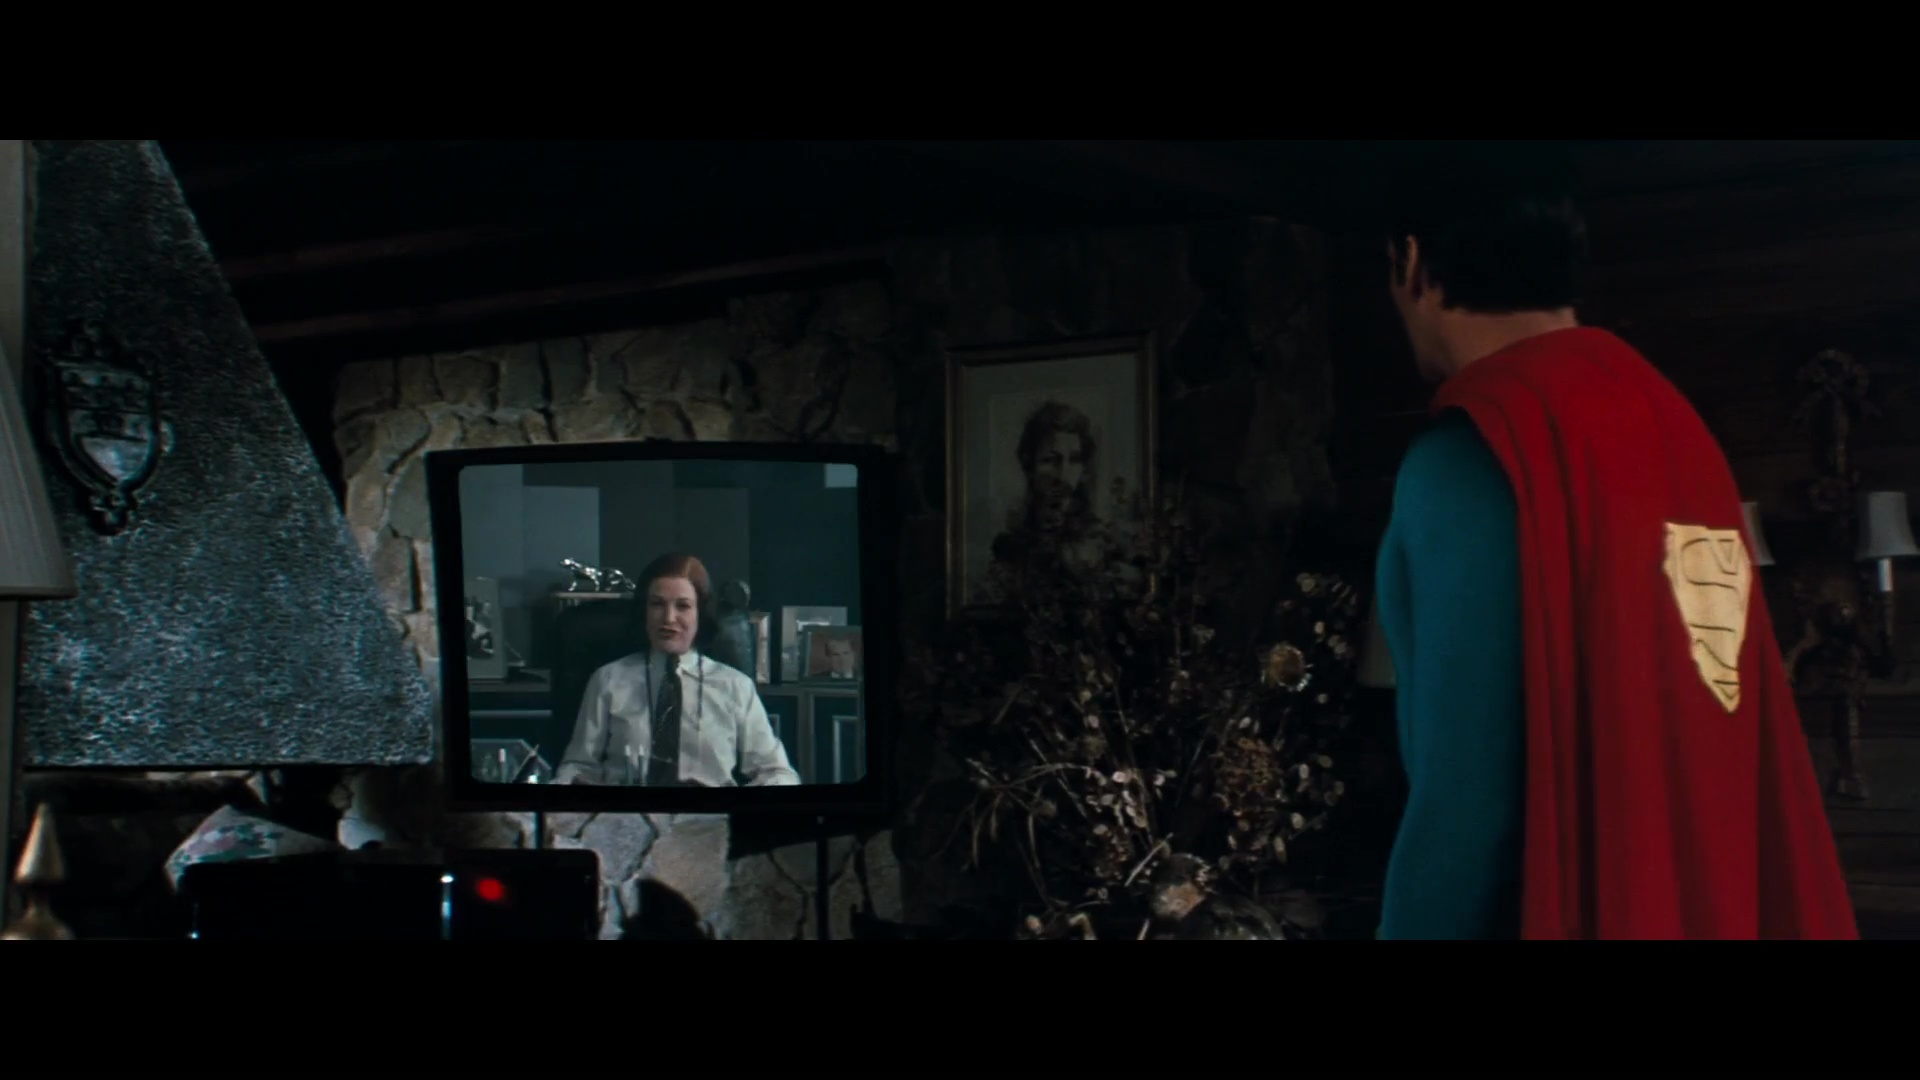 Superman 3 1080p Lat-Cast-Ing 5.1 (1983)